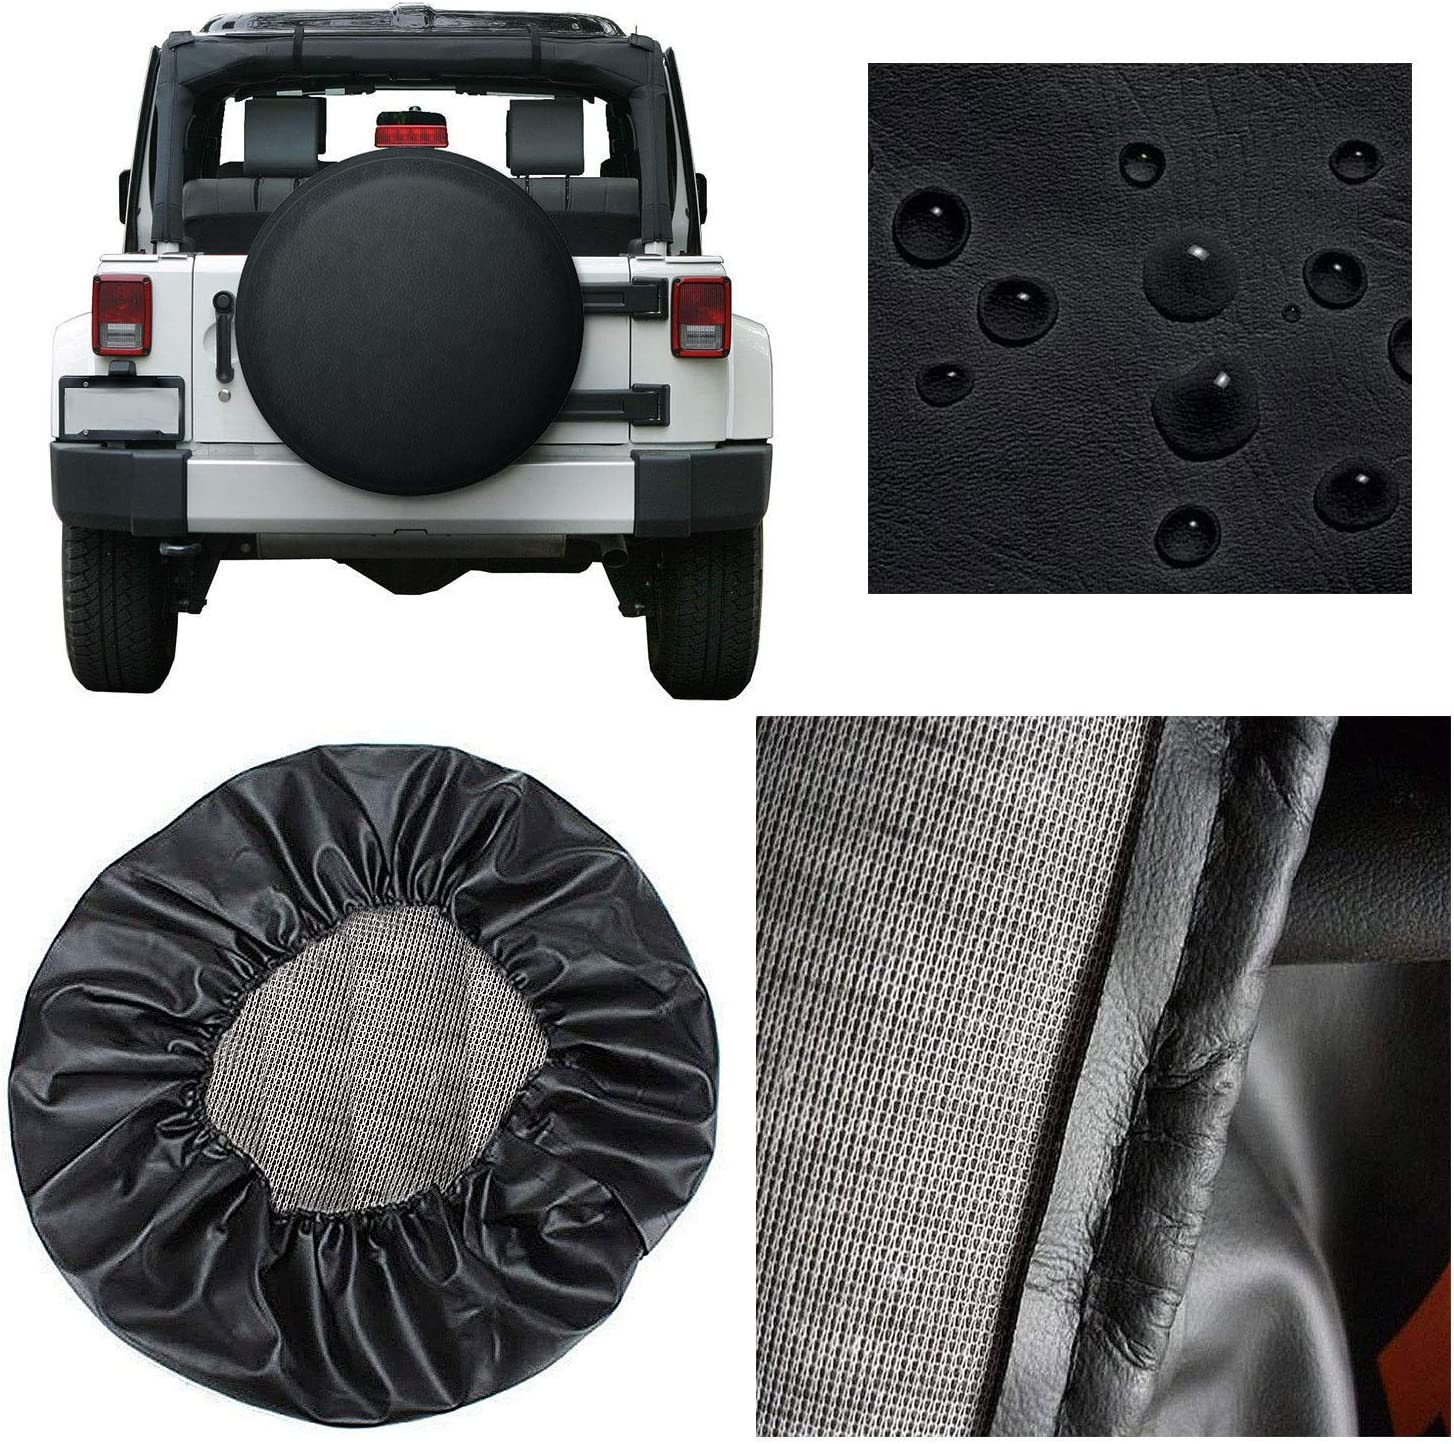 Trailer Truck and Many Vehicle SUV Valleycomfy Waterproof Spare Tire Cover Protector- Universal Fit Tire Covers,Wheel Diameter 25-27,Suit for Jeep RV Black, 14inch